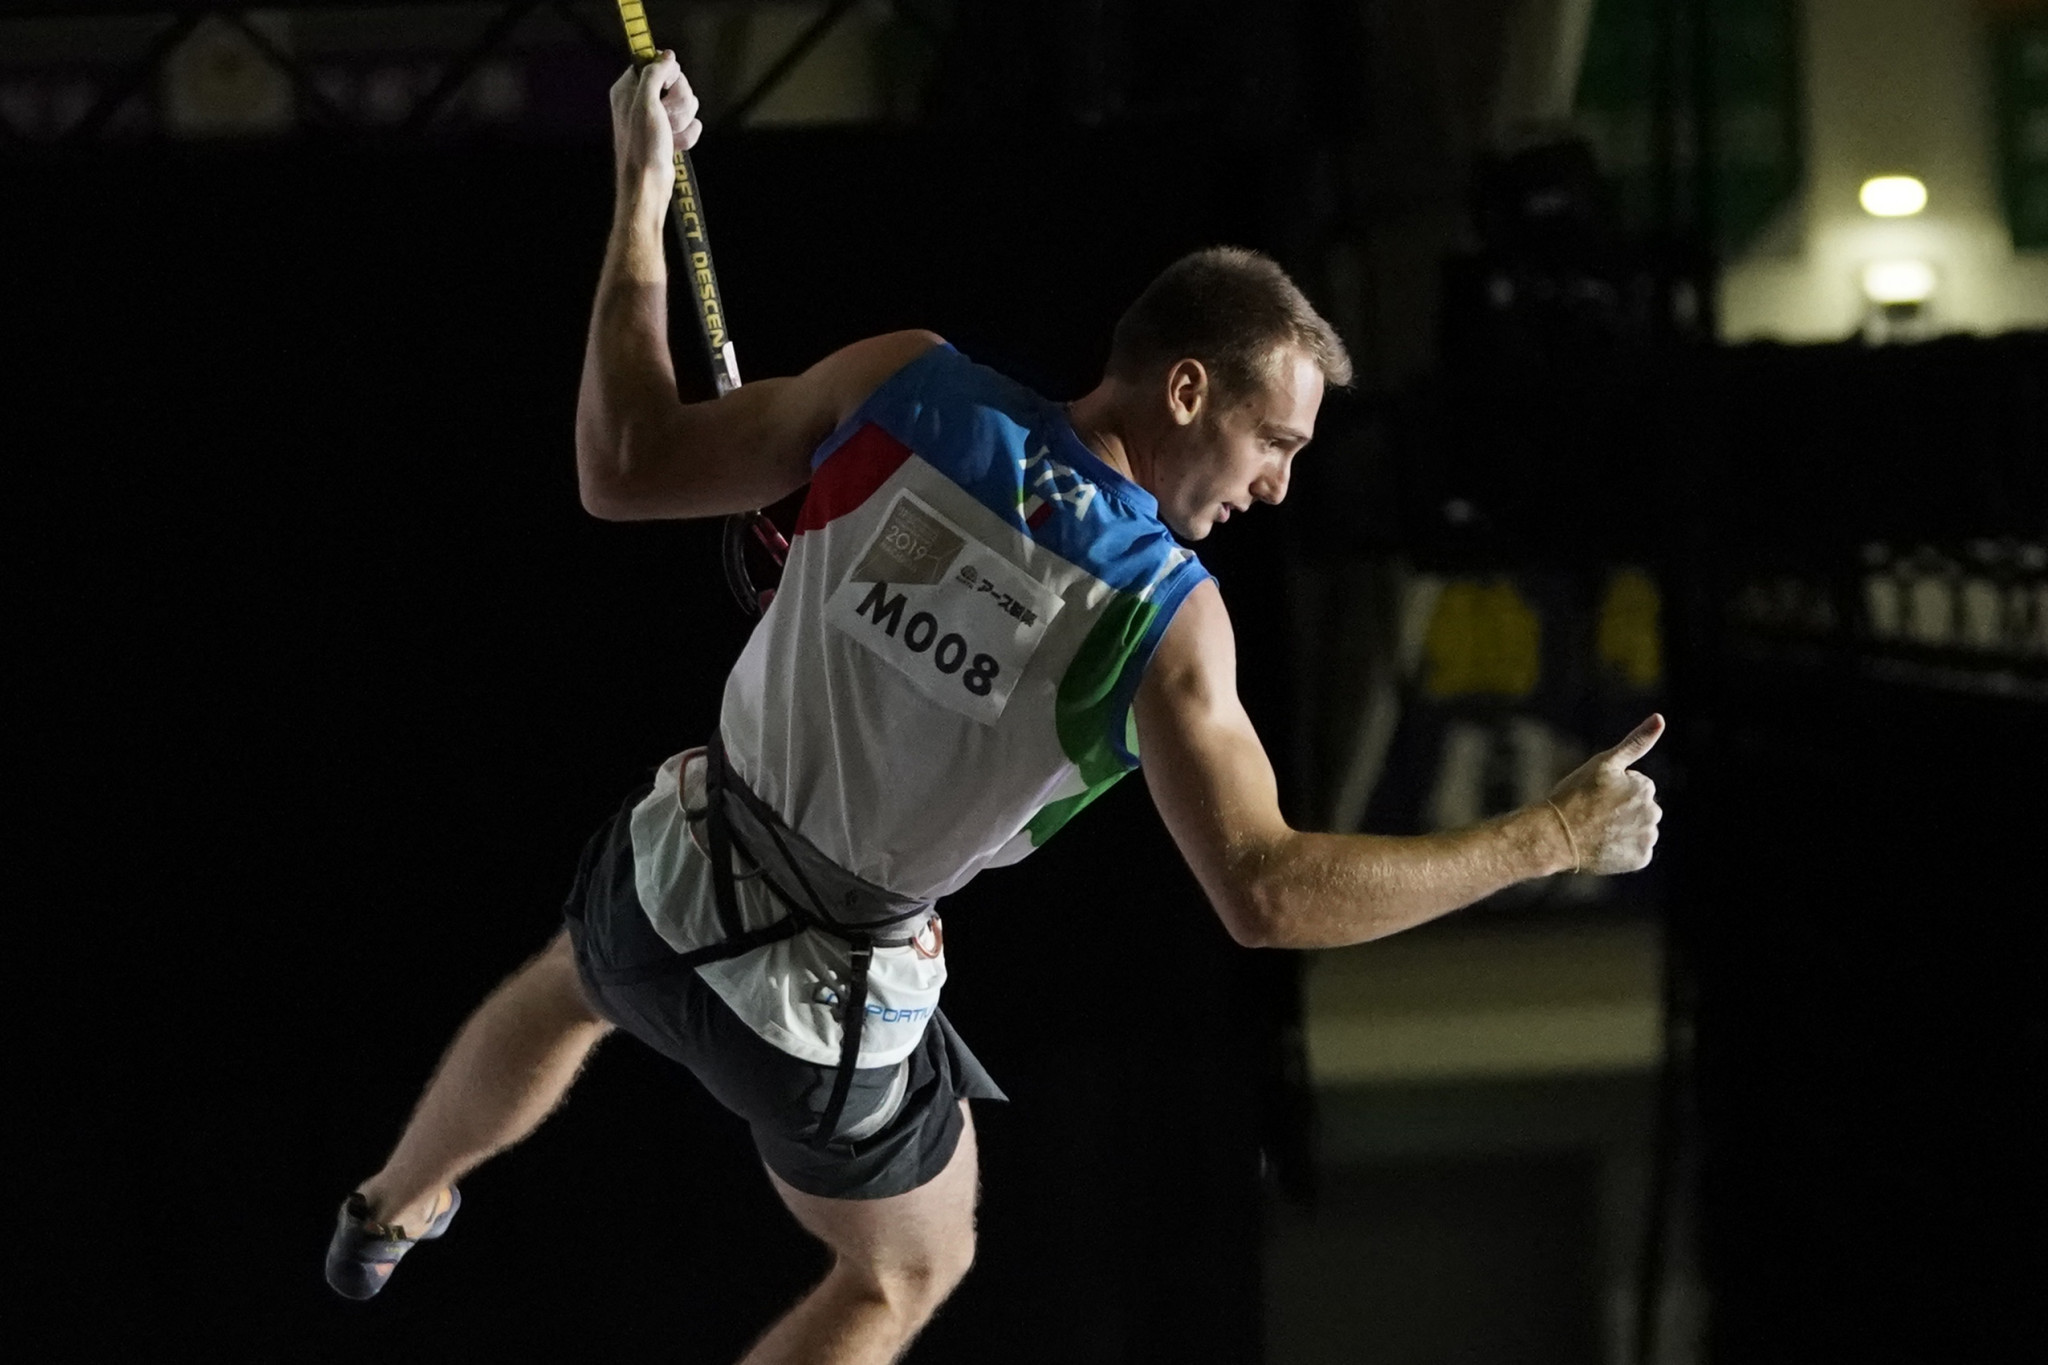 Speed climbers to get their chance at second IFSC World Cup in Salt Lake City